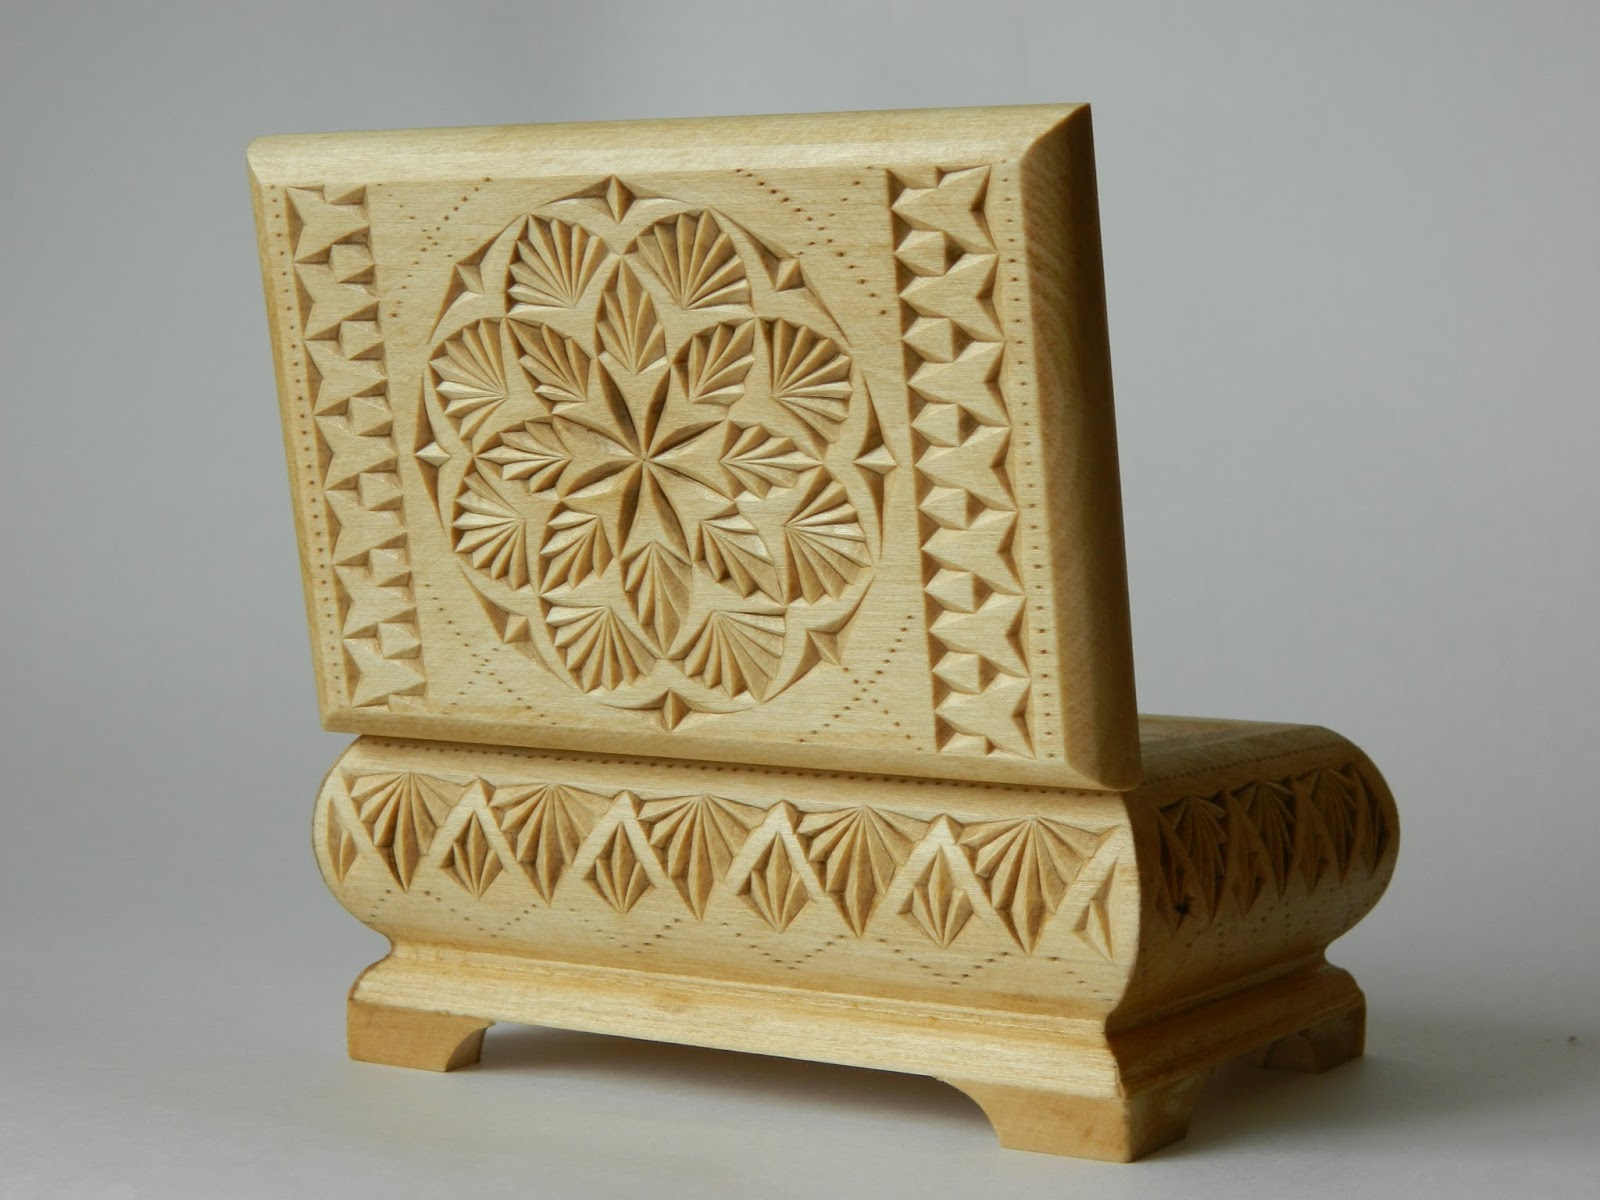 Fancychip tatiana baldina a gate into a blooming How to carve designs in wood